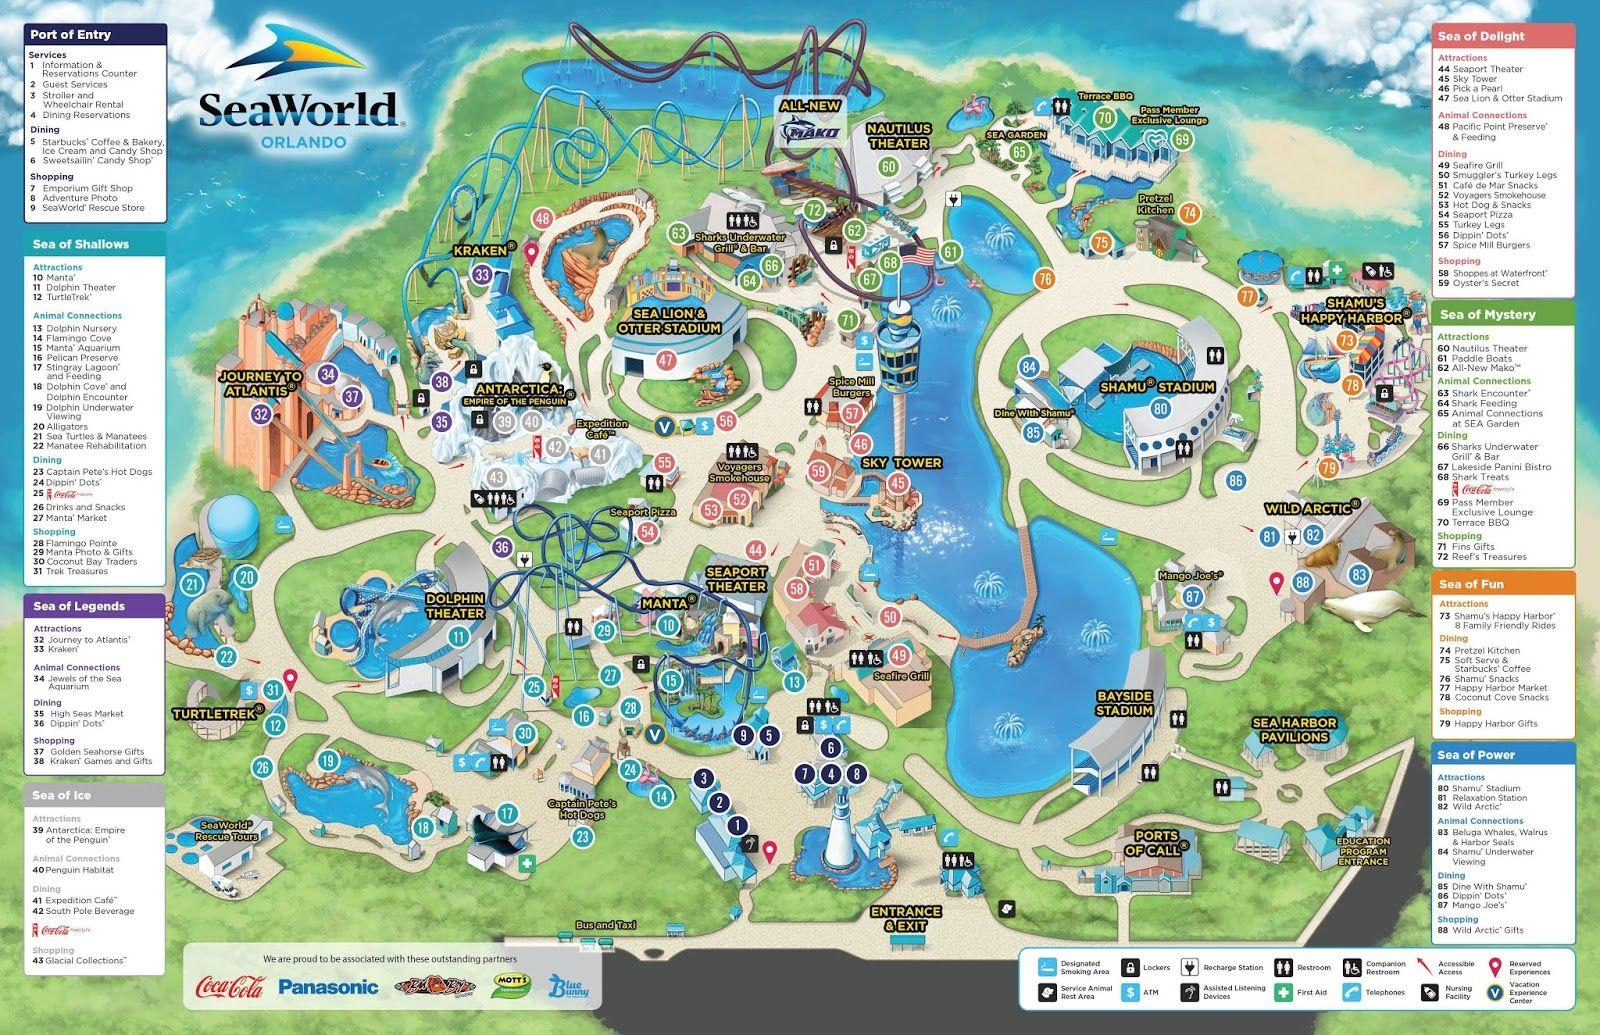 Seaworld Orlando Map - Map Of Seaworld (Florida - Usa) - Seaworld Orlando Map 2017 Printable